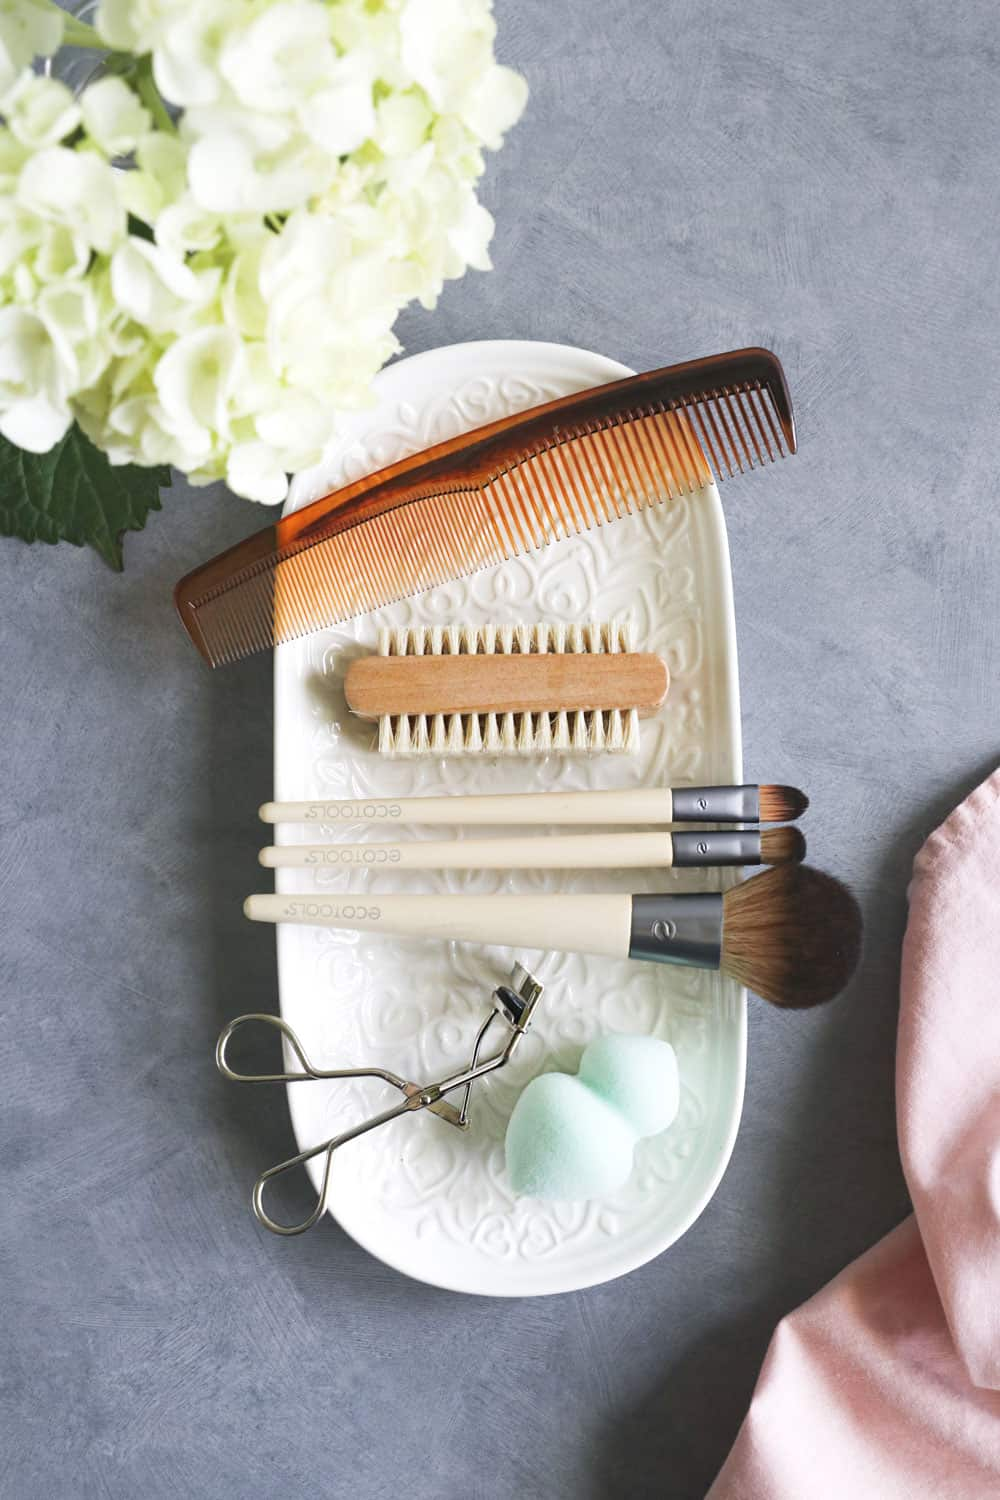 Our Ultimate Guide: How to Clean Beauty Tools